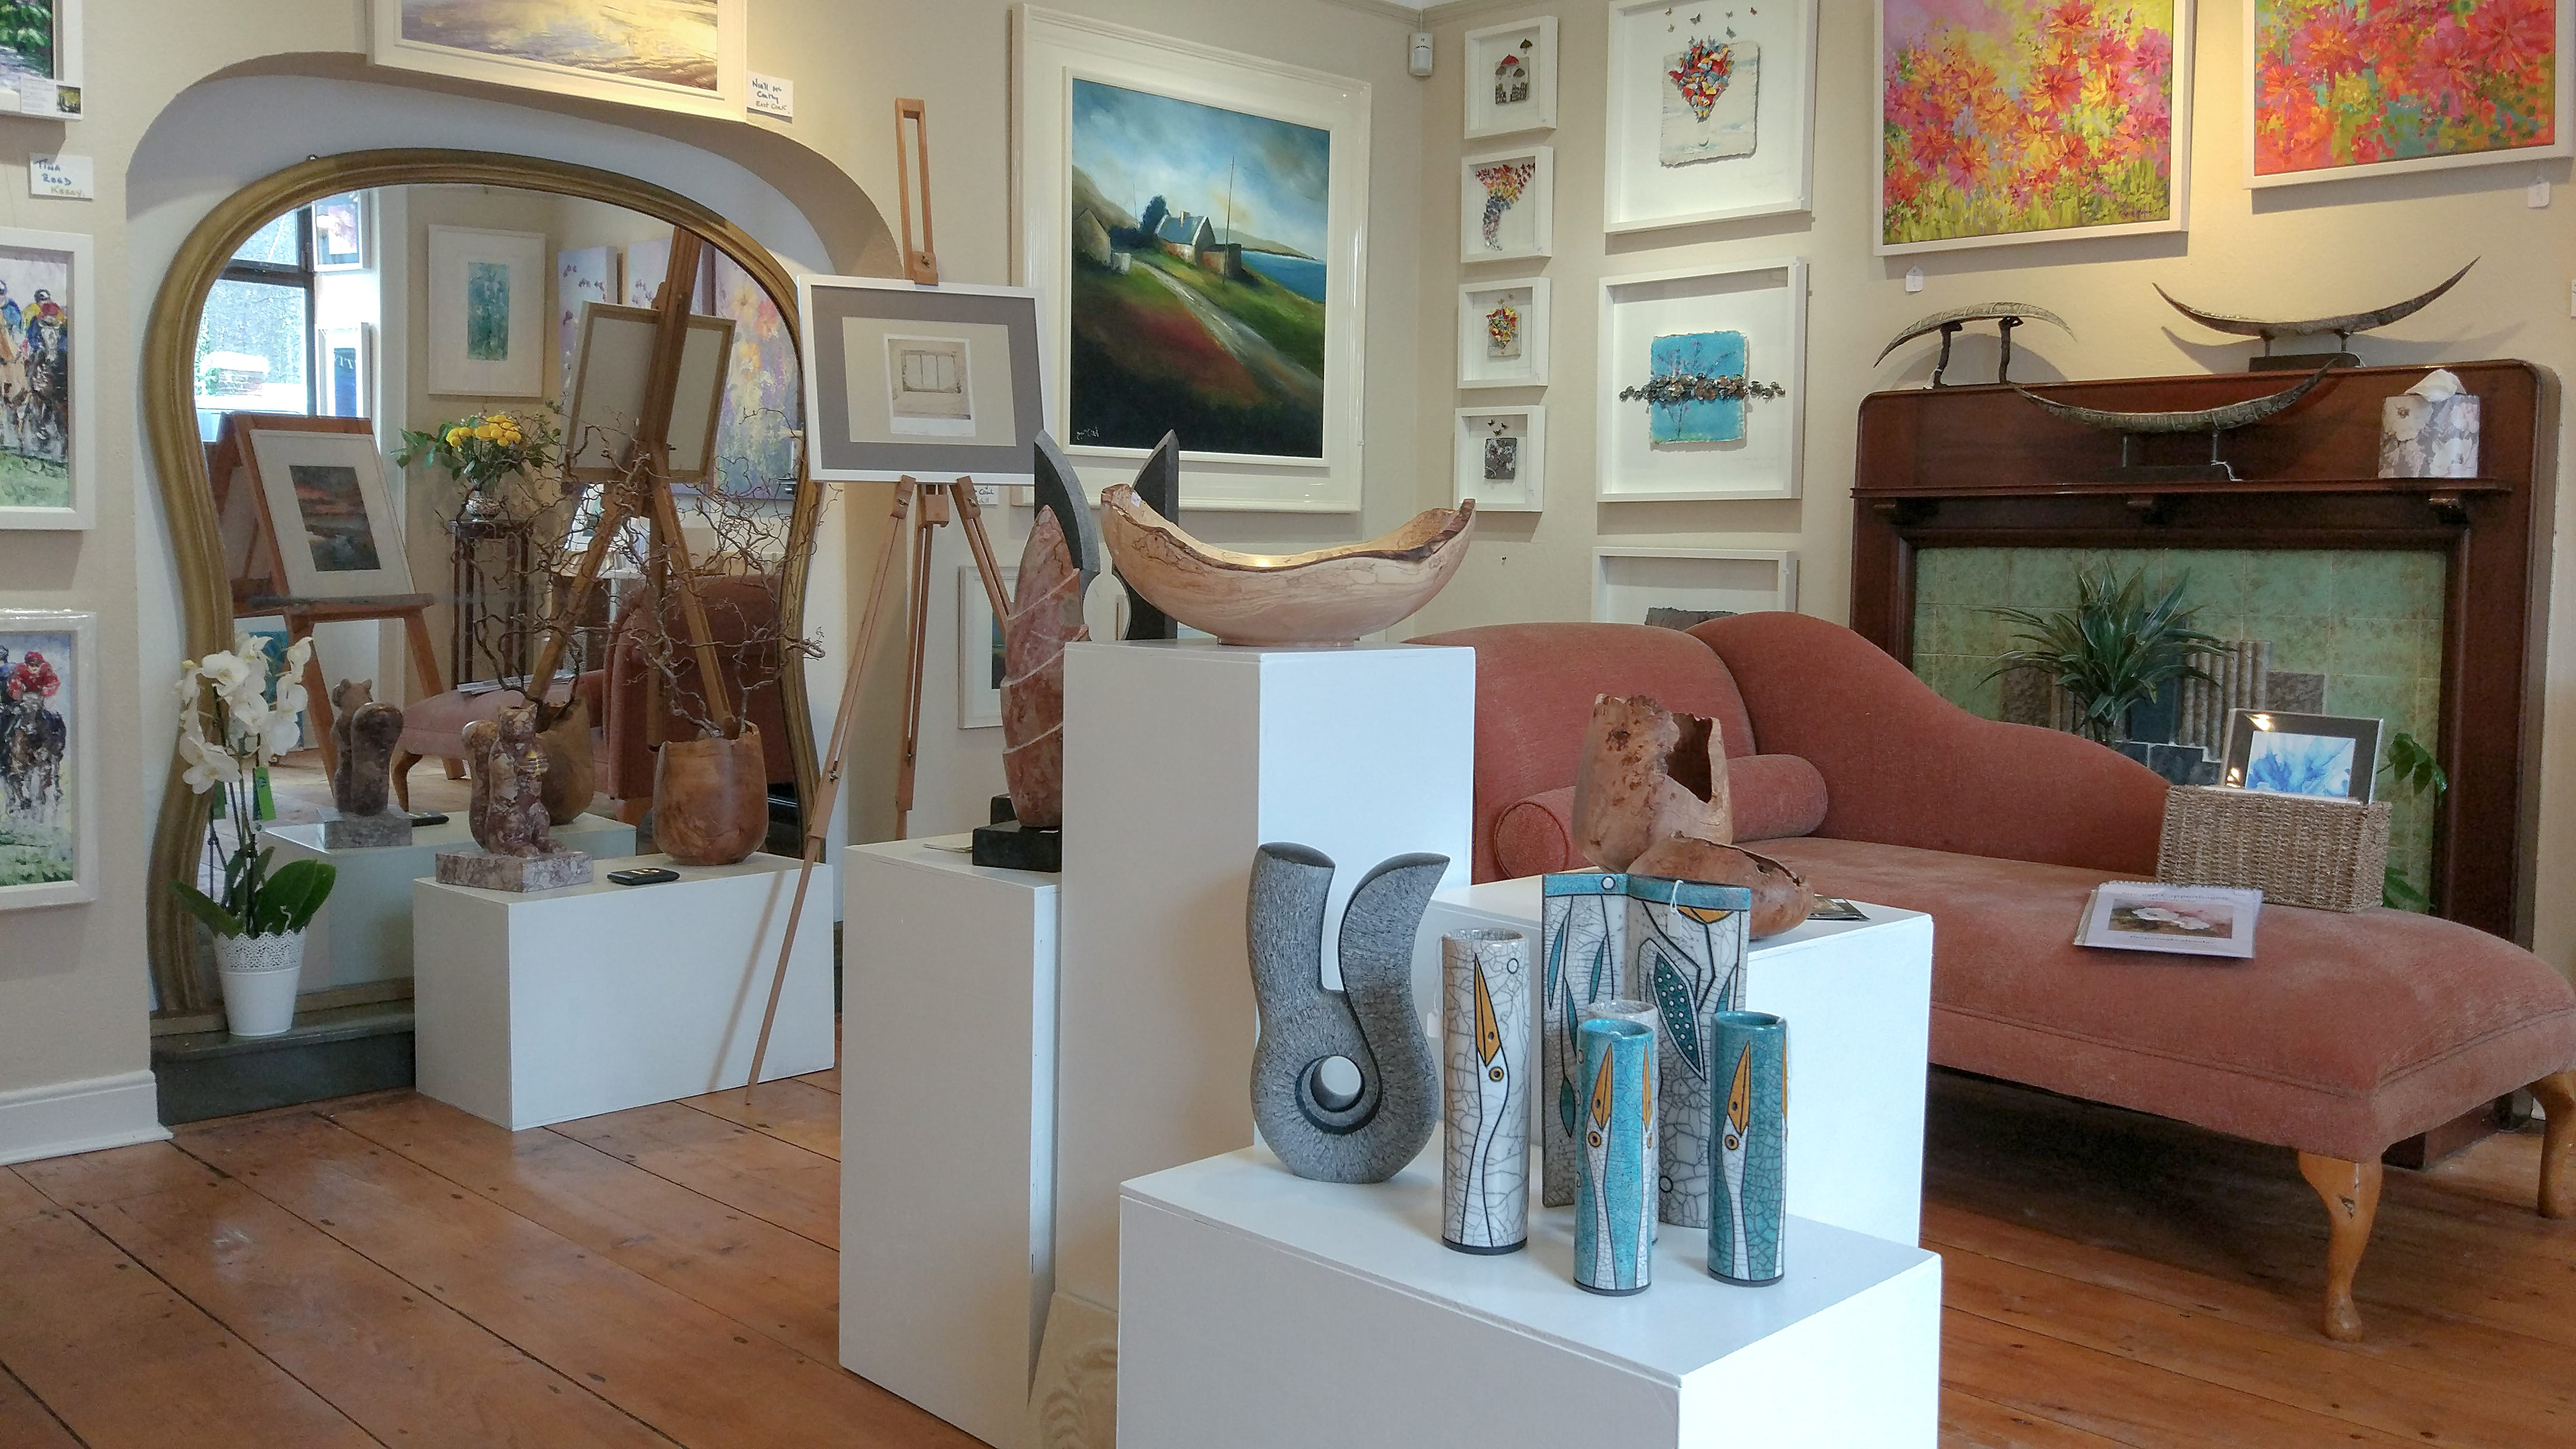 Castlemartyr House Gallery & Gifts - Co. Cork, Ireland